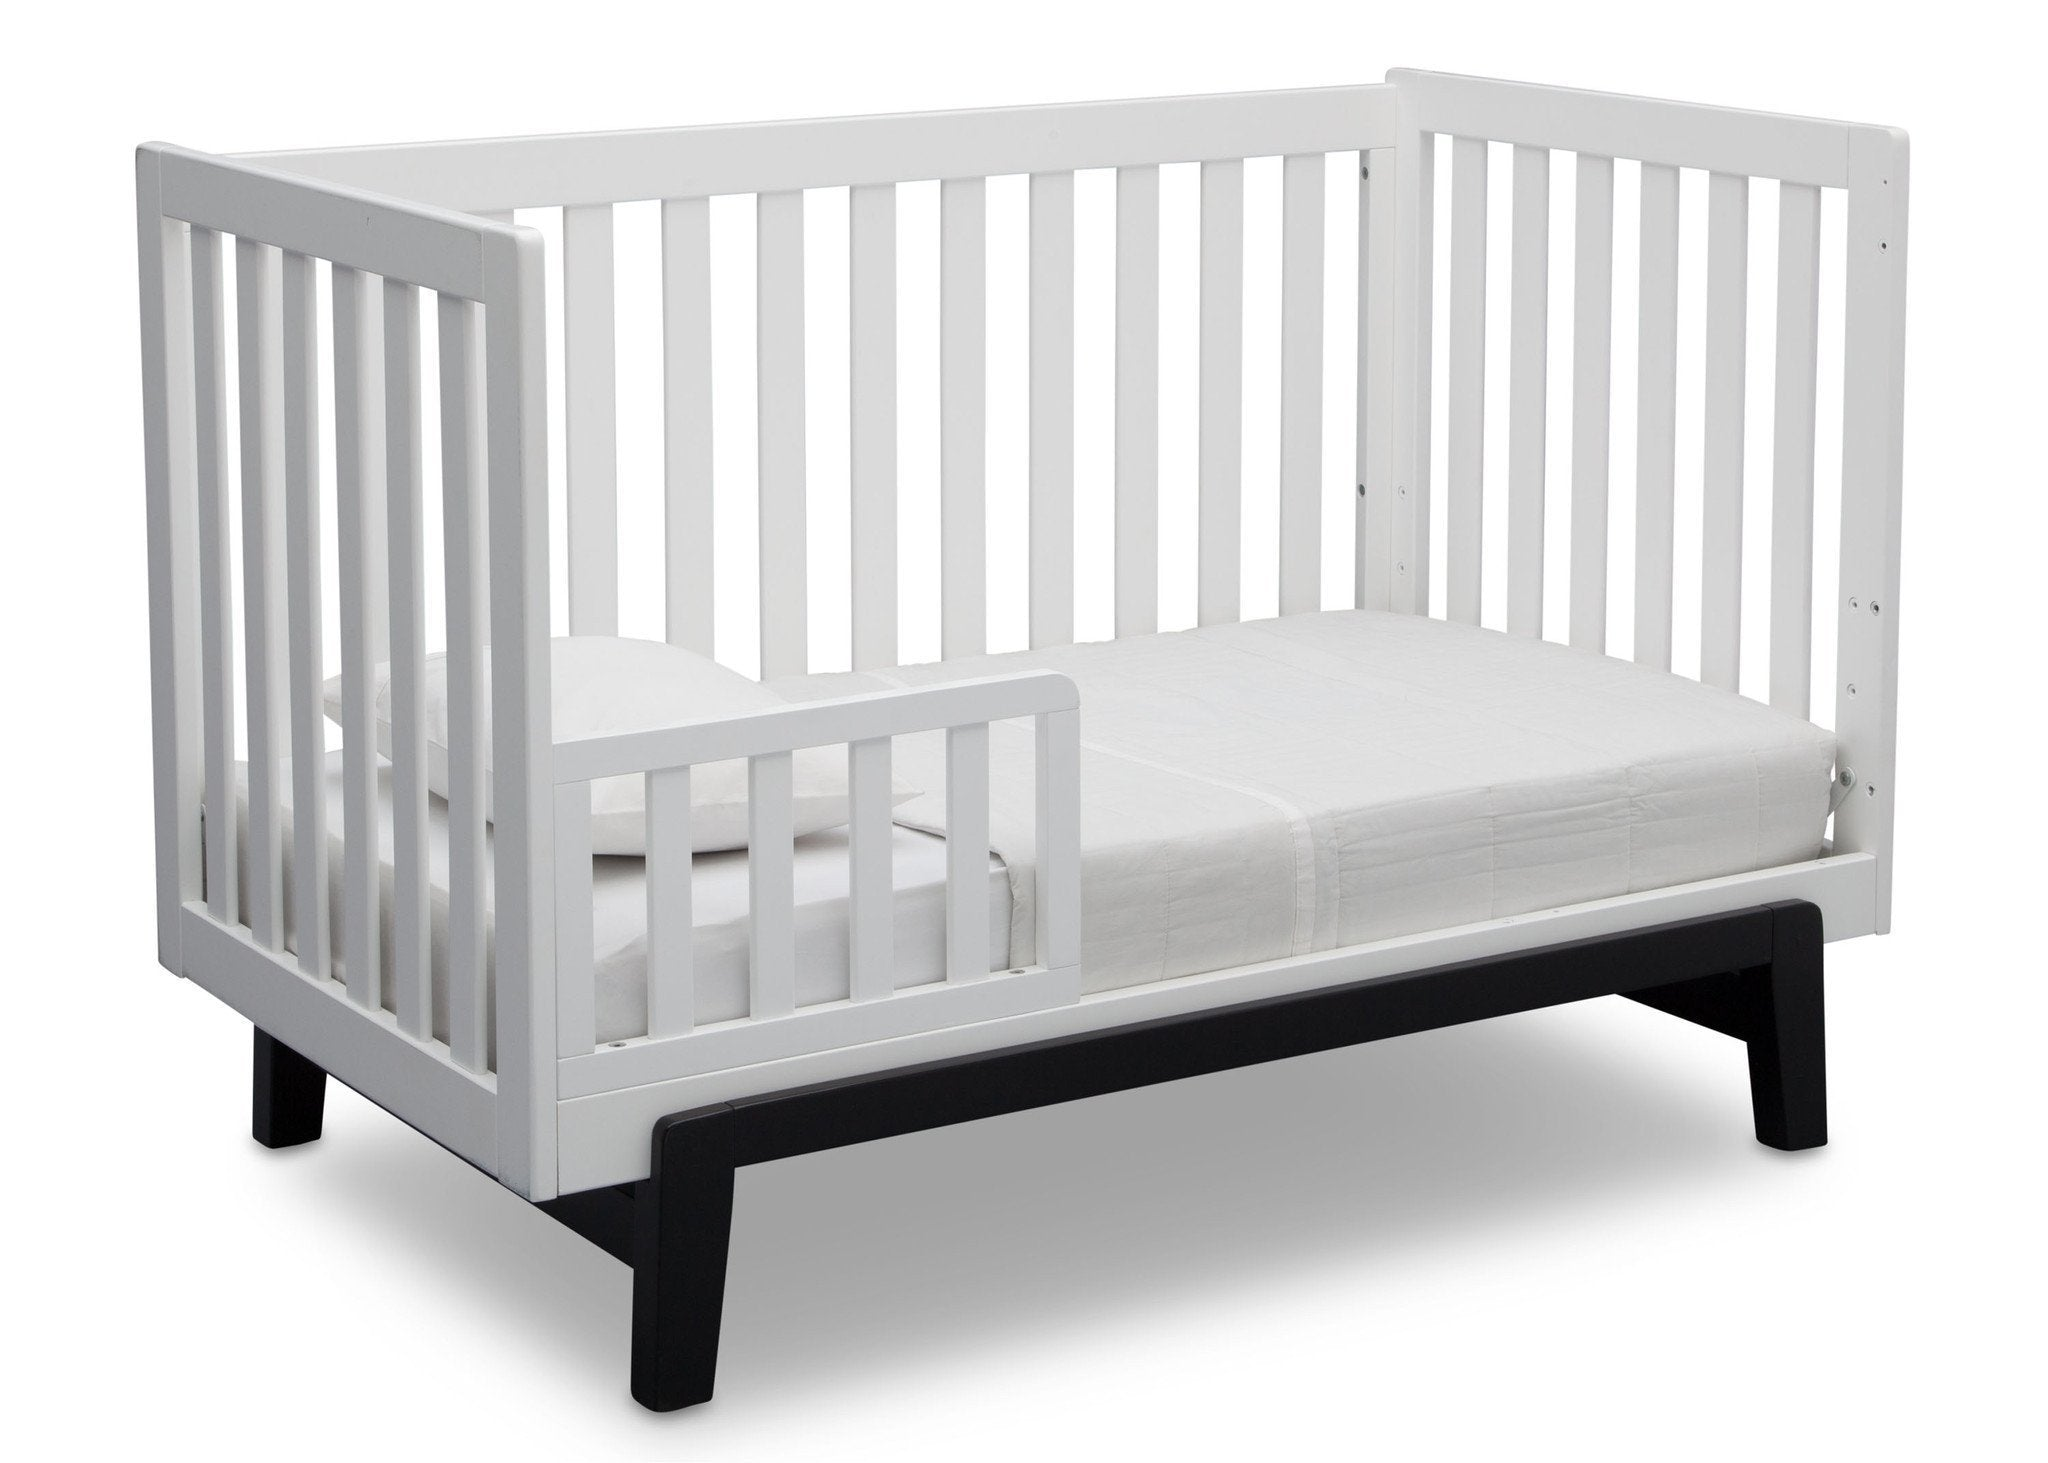 Delta Children Bianca White with Ebony (149) Aster 3-in-1 Crib, Toddler Bed Conversion a5a